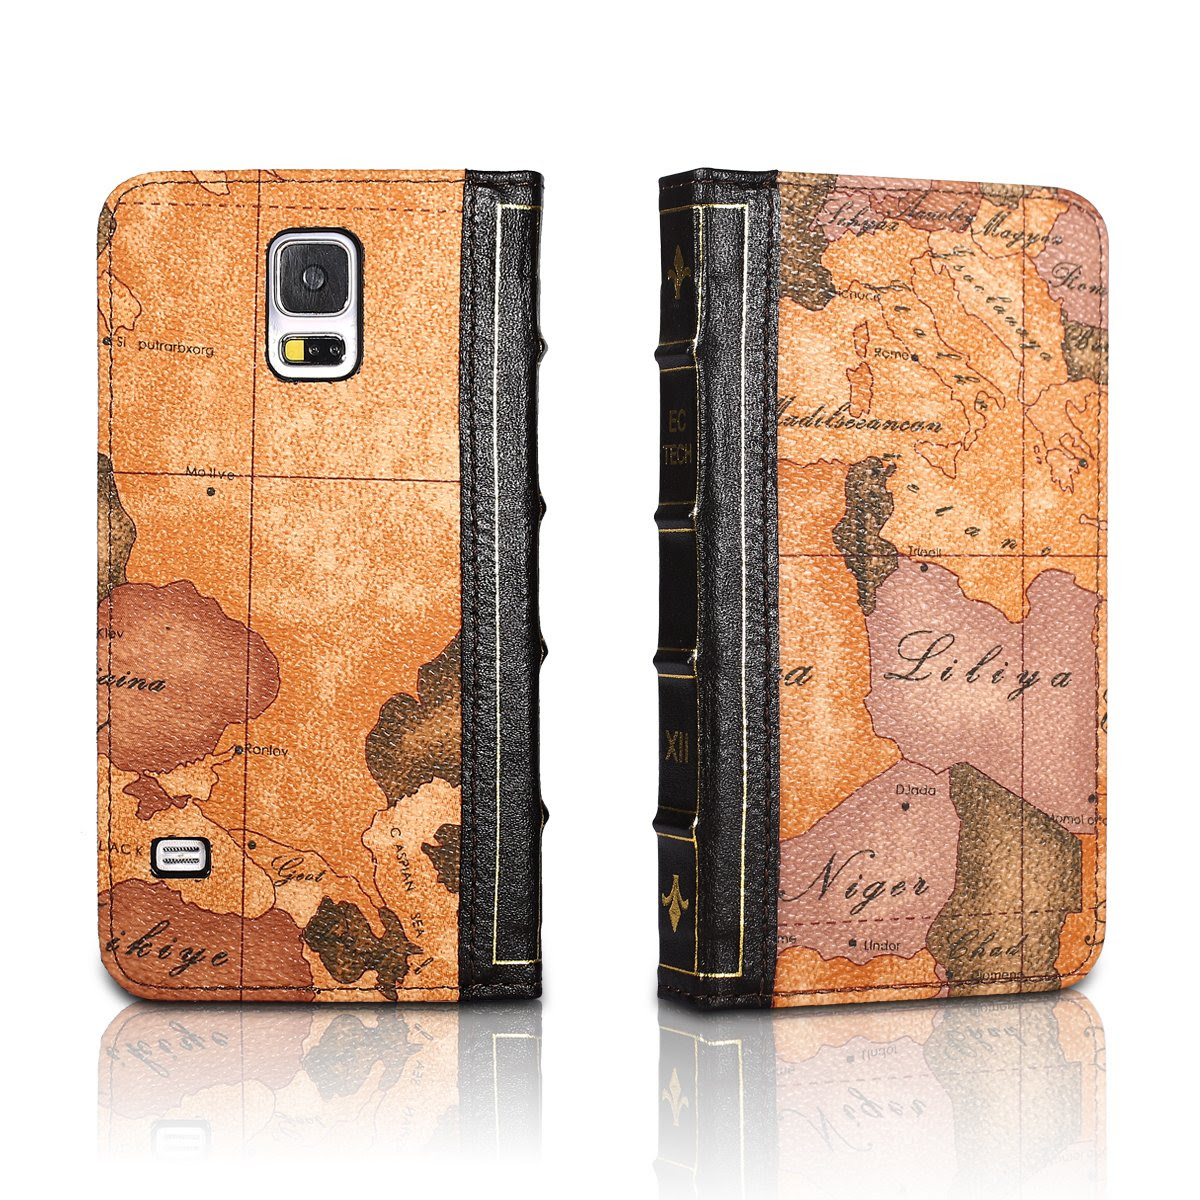 Galaxy S5 Handmade Retro Style Genuine Leather Case